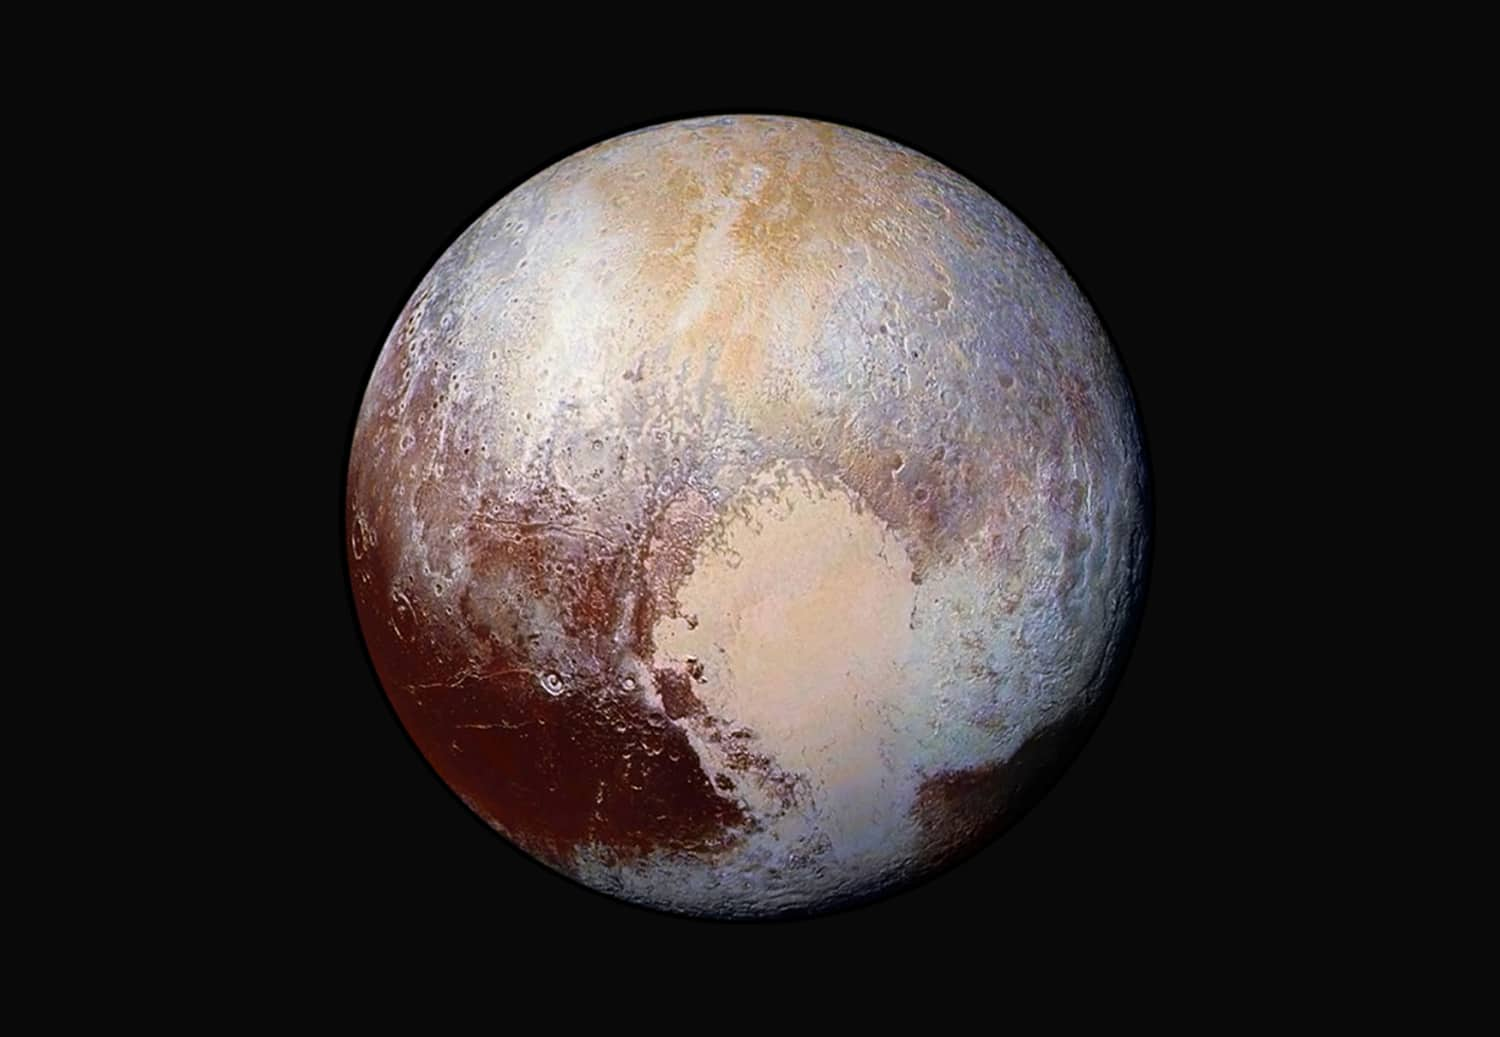 """This NASA image obtained July 24, 2015 shows how New Horizons scientists have used enhanced color images to detect differences in the composition and texture of Pluto''s surface. The """"heart of the heart,"""" Sputnik Planum, is suggestive of a source region of ices. The two bluish-white """"lobes"""" that extend to the southwest and northeast of the """"heart"""" may represent exotic ices being transported away from Sputnik Planum."""